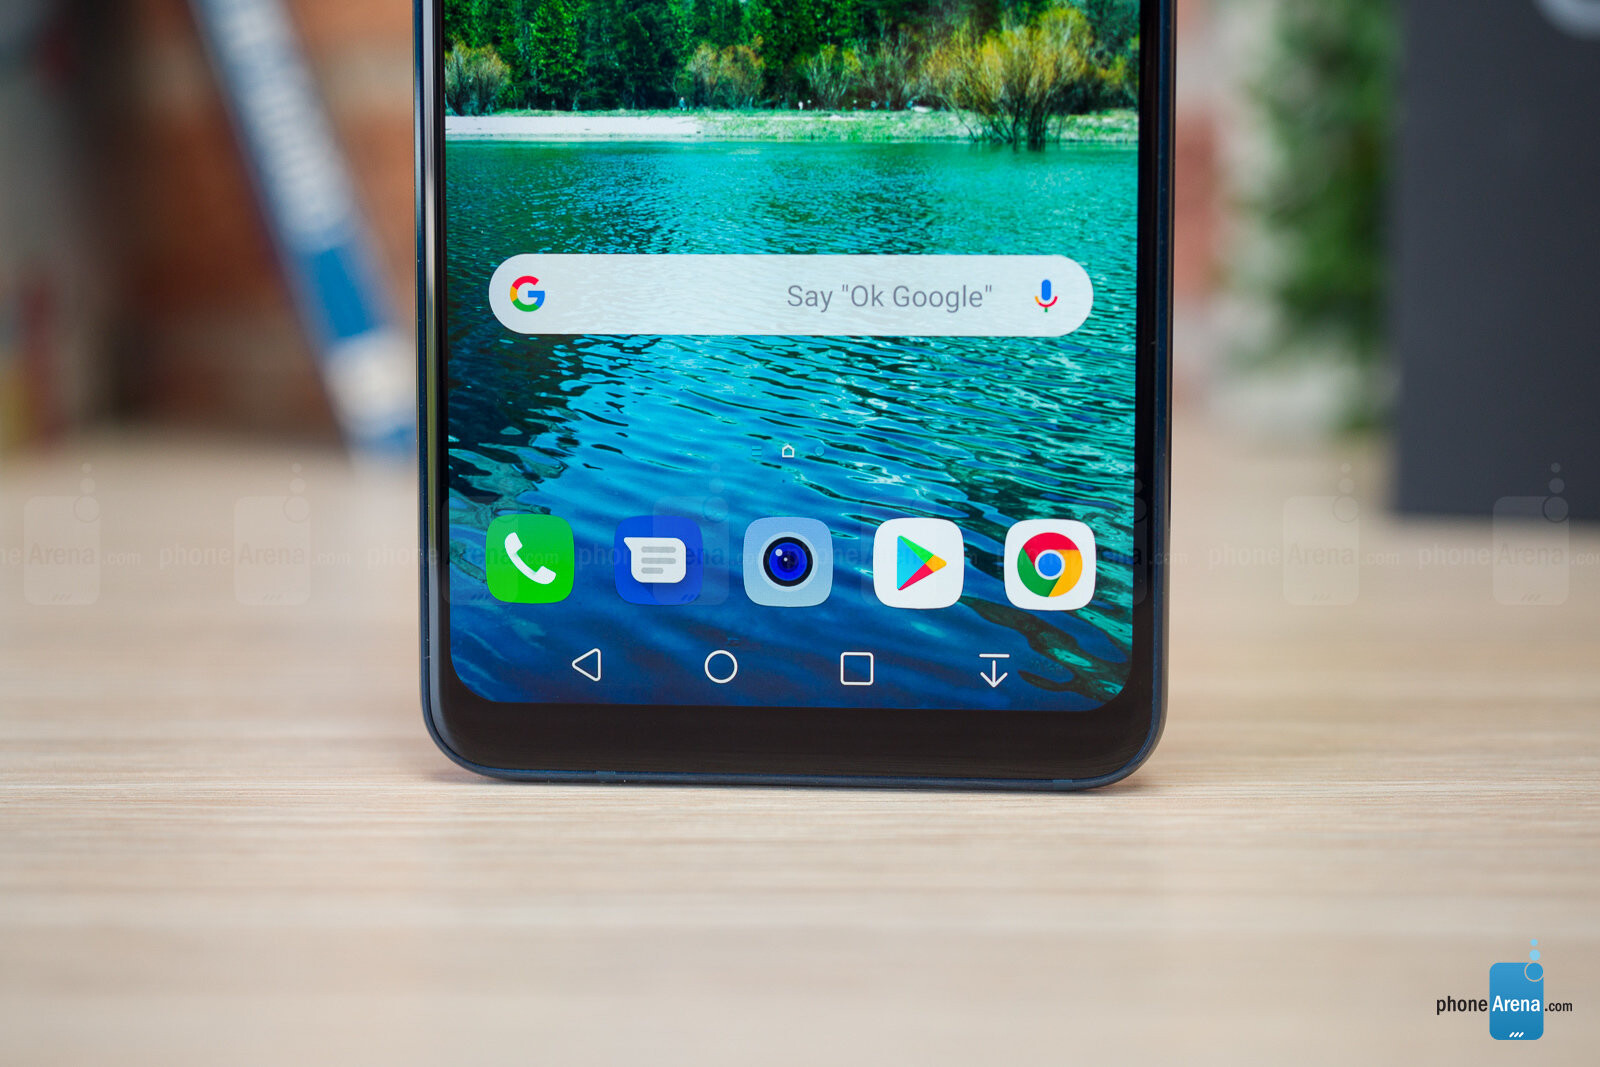 LG G7 ThinQ Review - PhoneArena